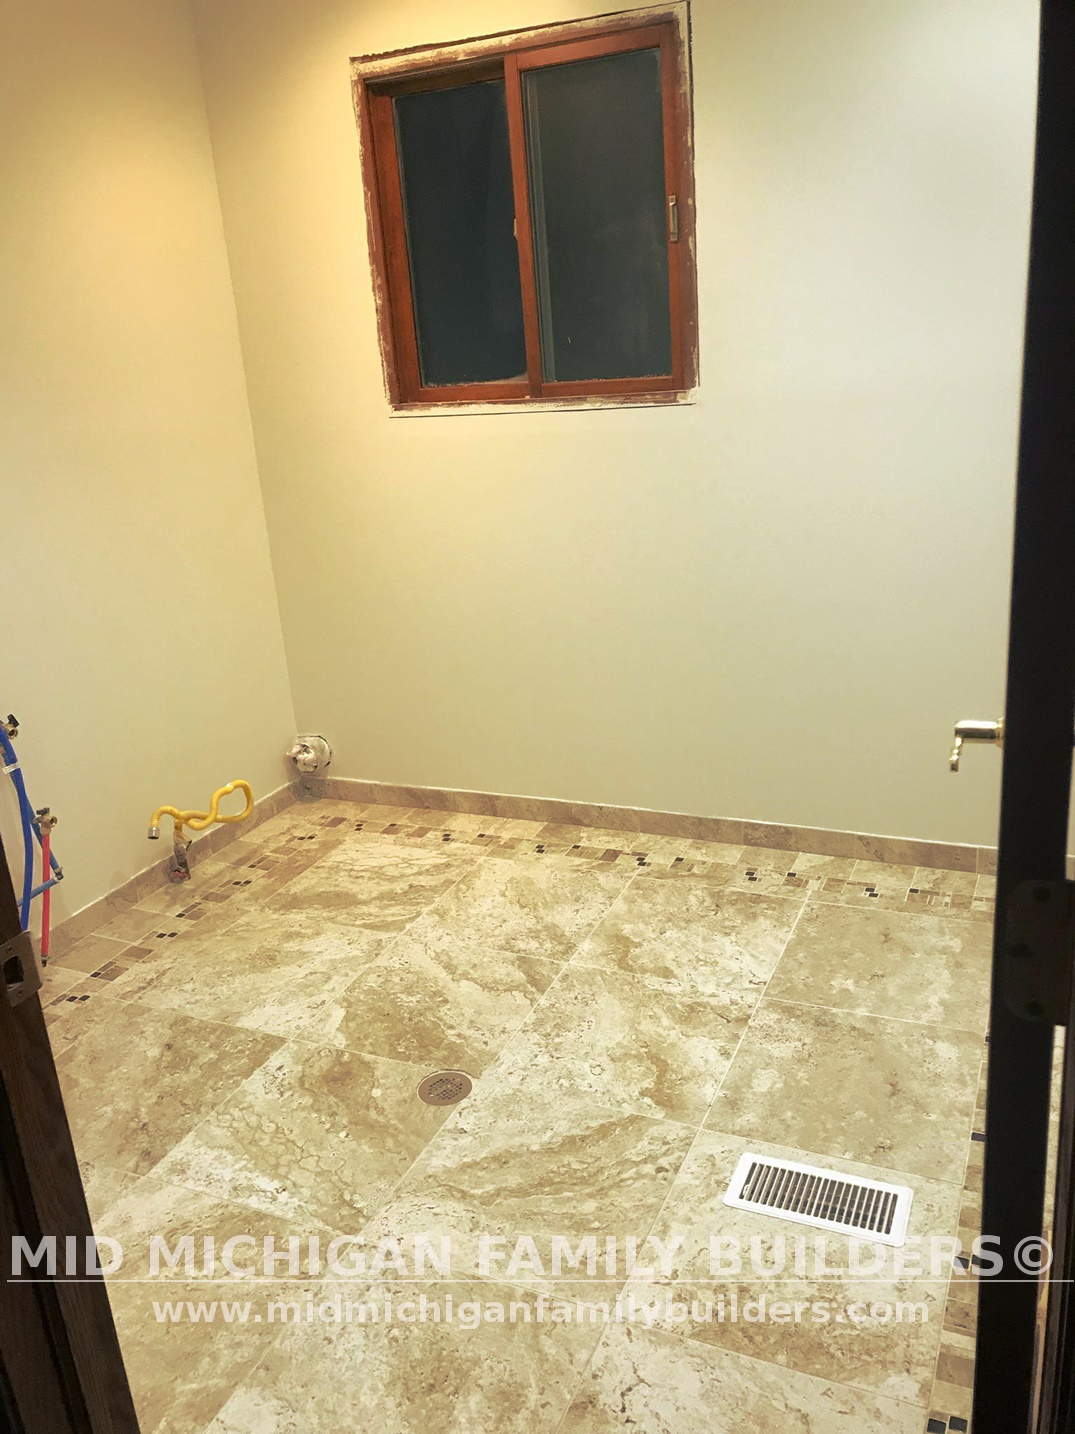 Mid Michigan Family Builders Bathrrom Laundry Project 01